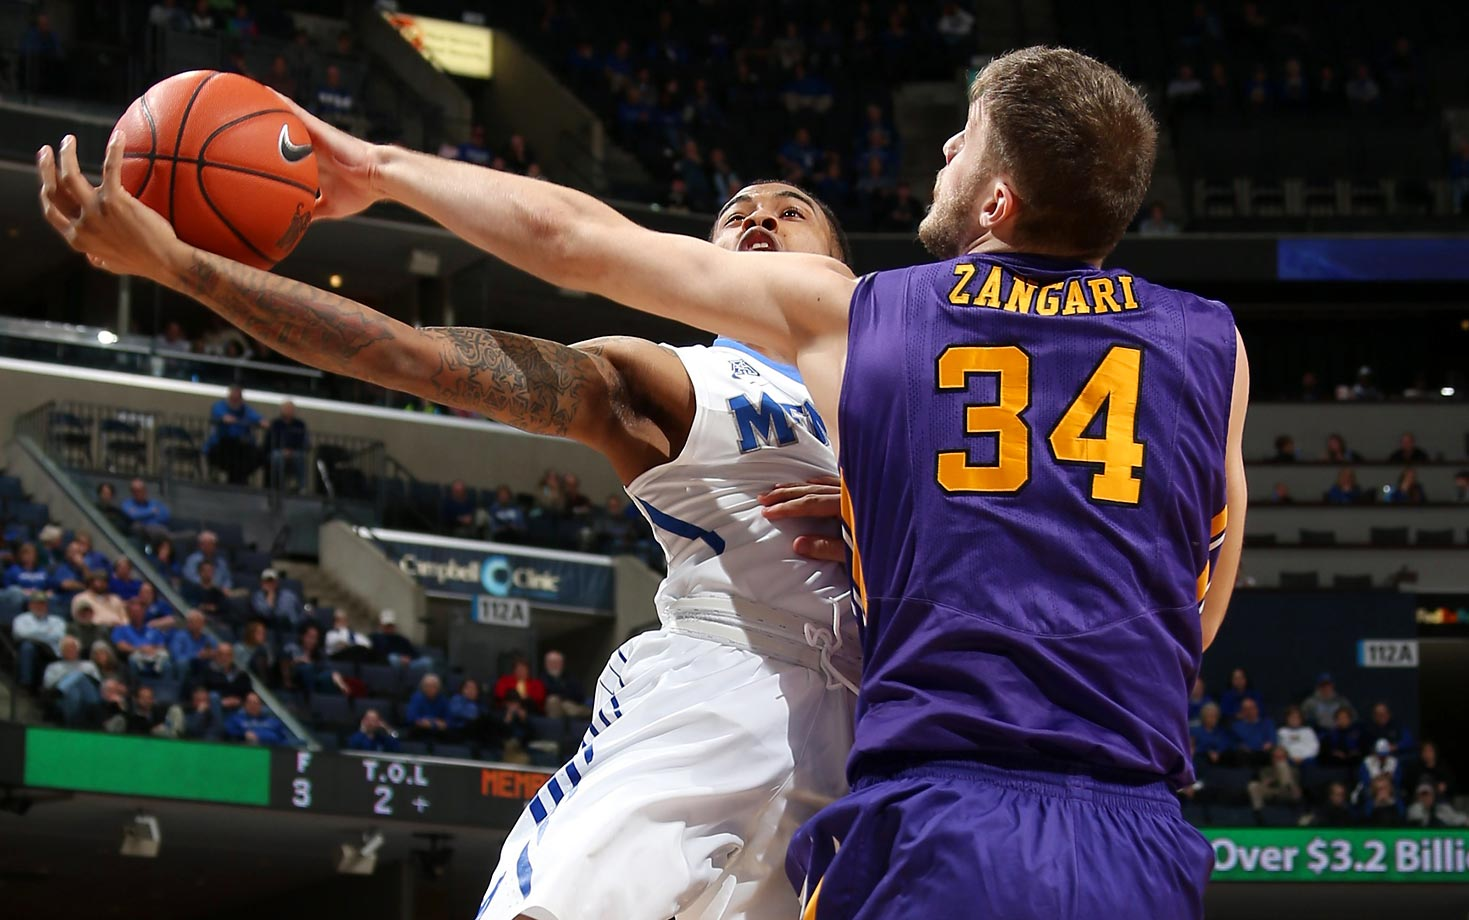 Michael Zangari of the East Carolina Pirates blocks a shot by D'Marnier Cunningham of Memphis. Memphis beat East Carolina 70-58.